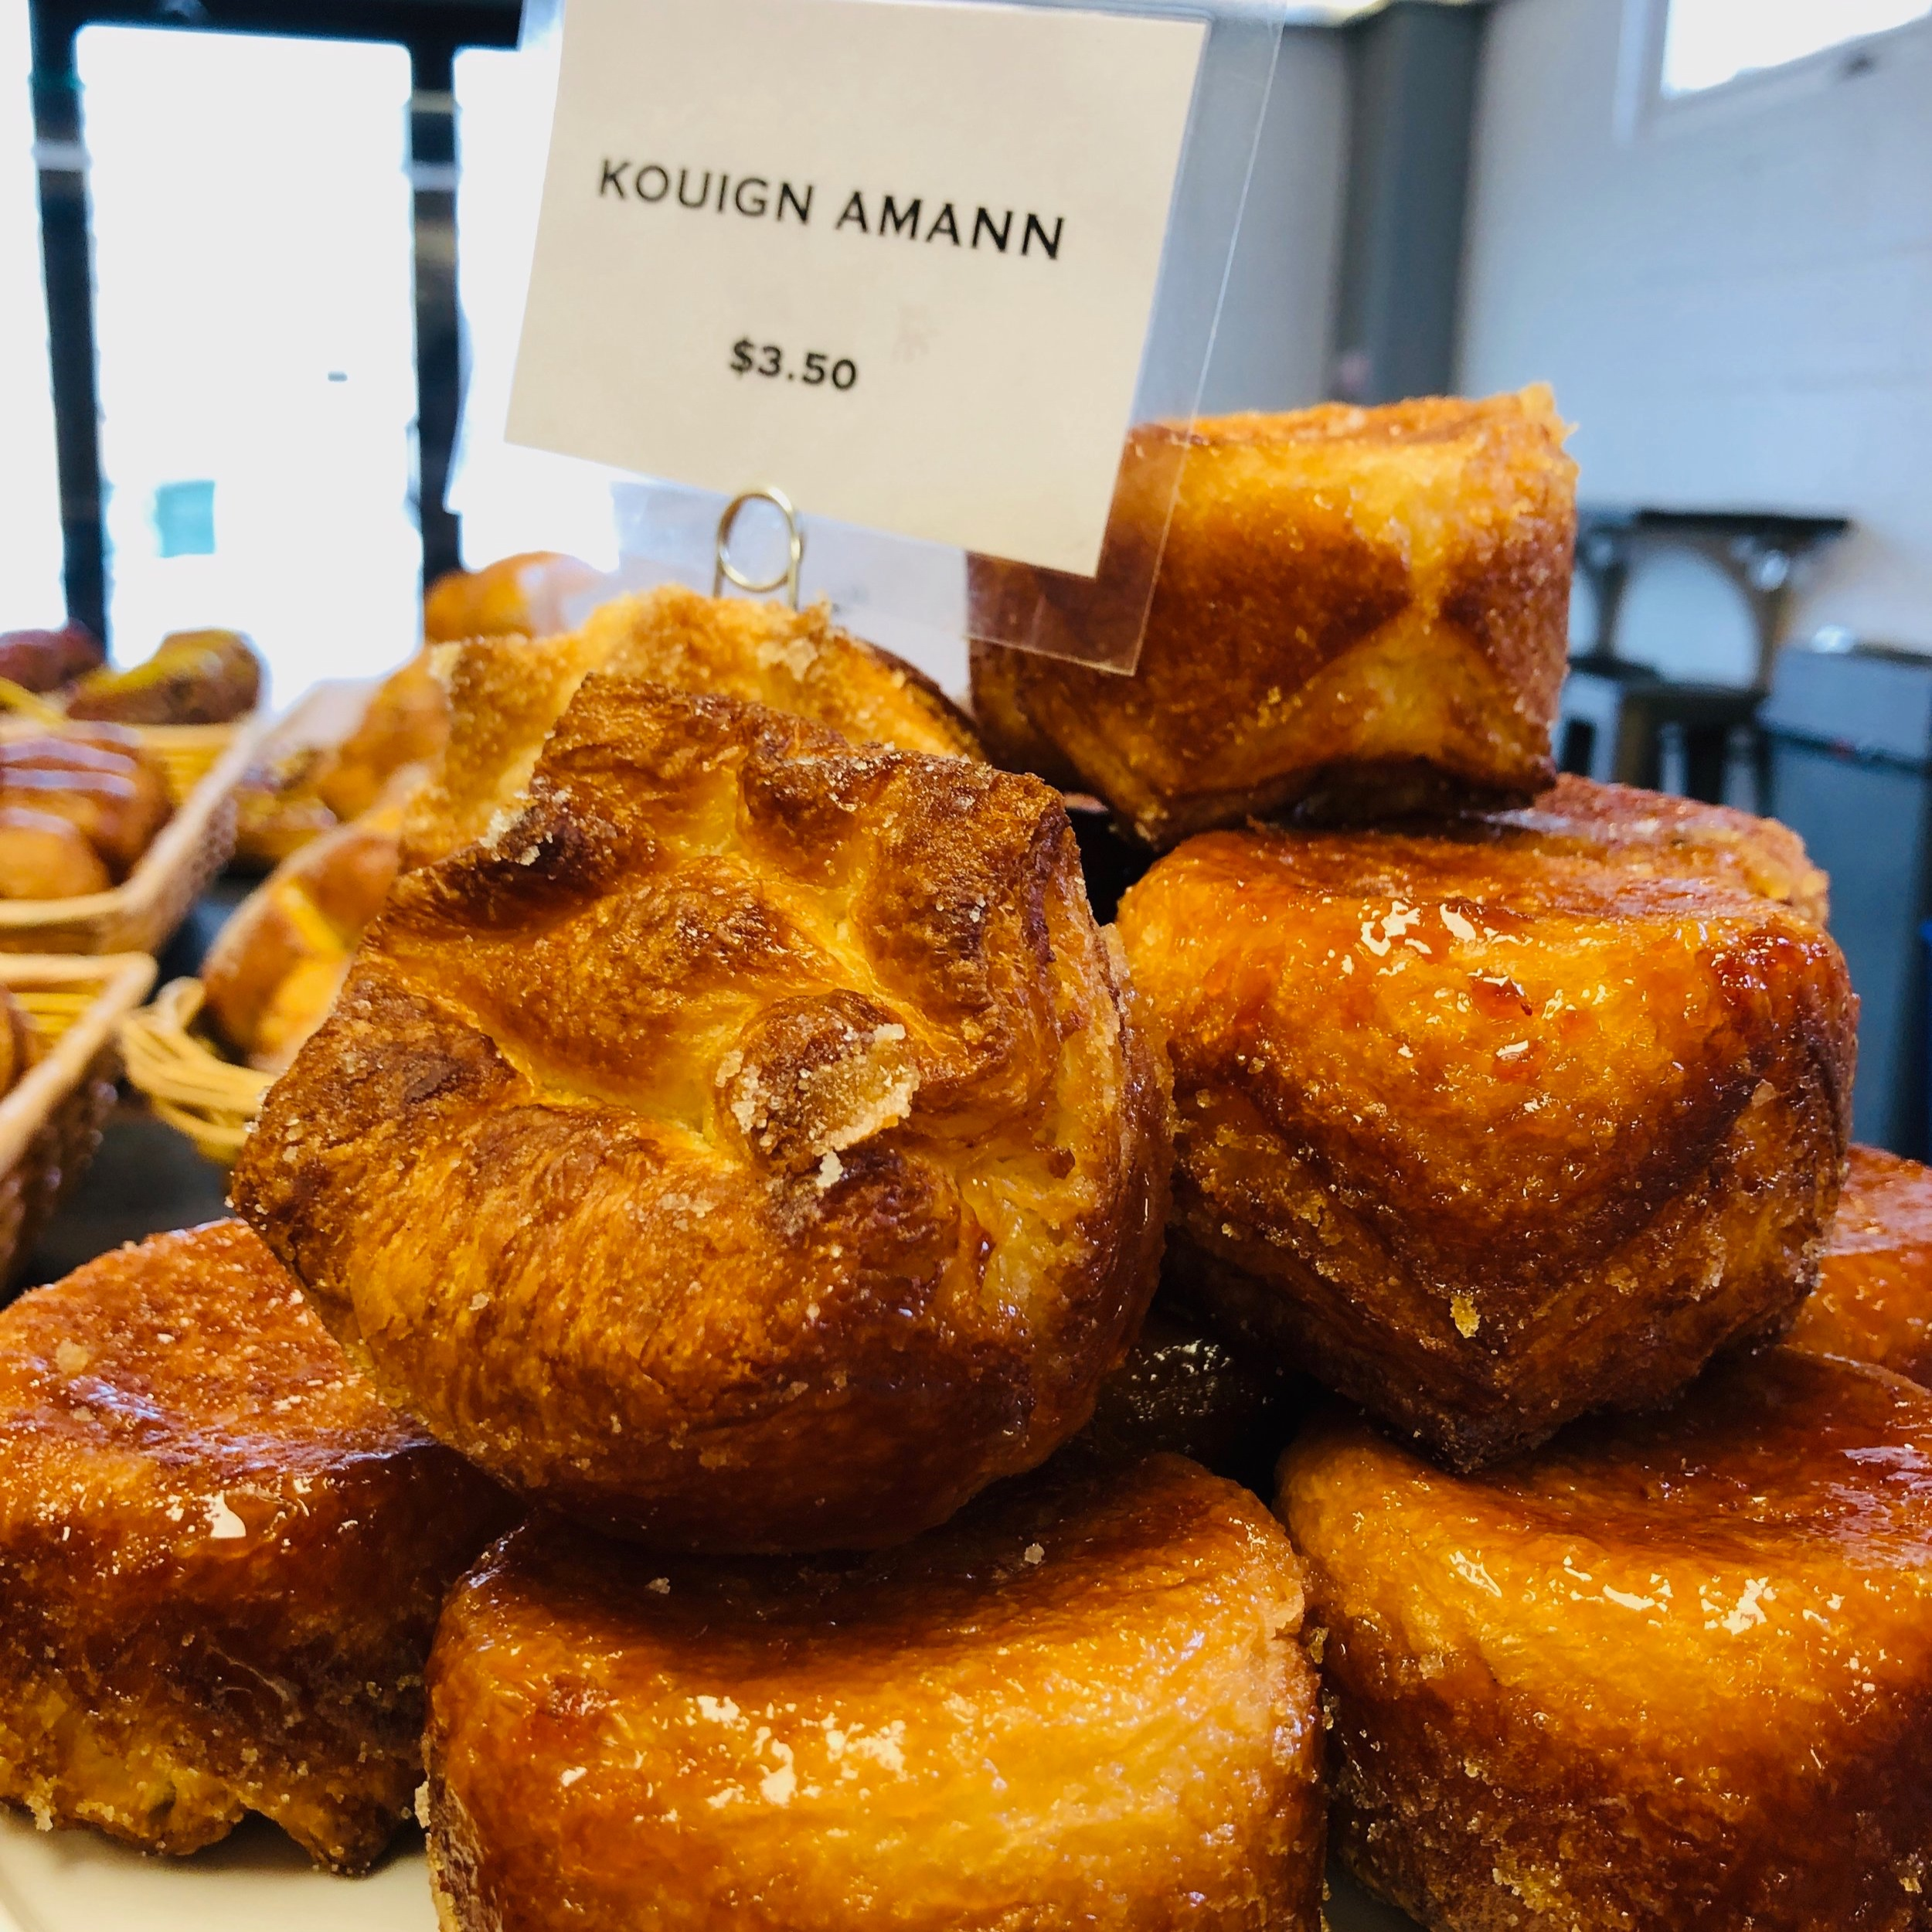 We specialize in creative, French-inspired viennoiserie and pastry. Using traditional techniques and high quality butter, we make croissant, brioche, and lesser known regional specialties daily. Click for  gallery  or  menu .